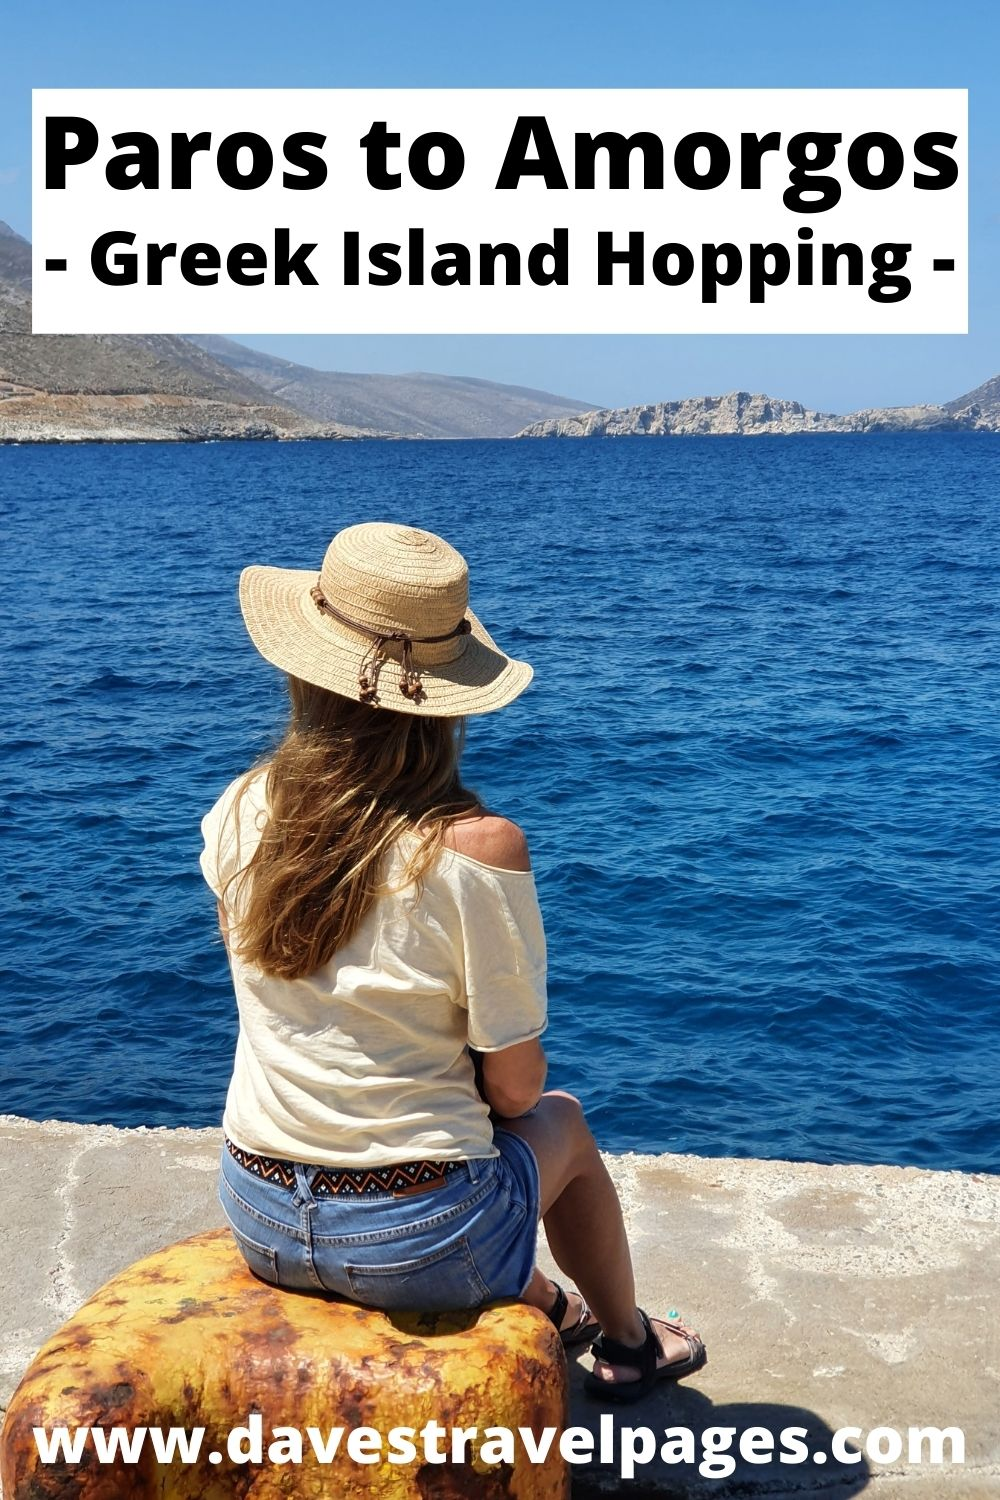 Taking the ferry from Paros to Amorgos in Greece